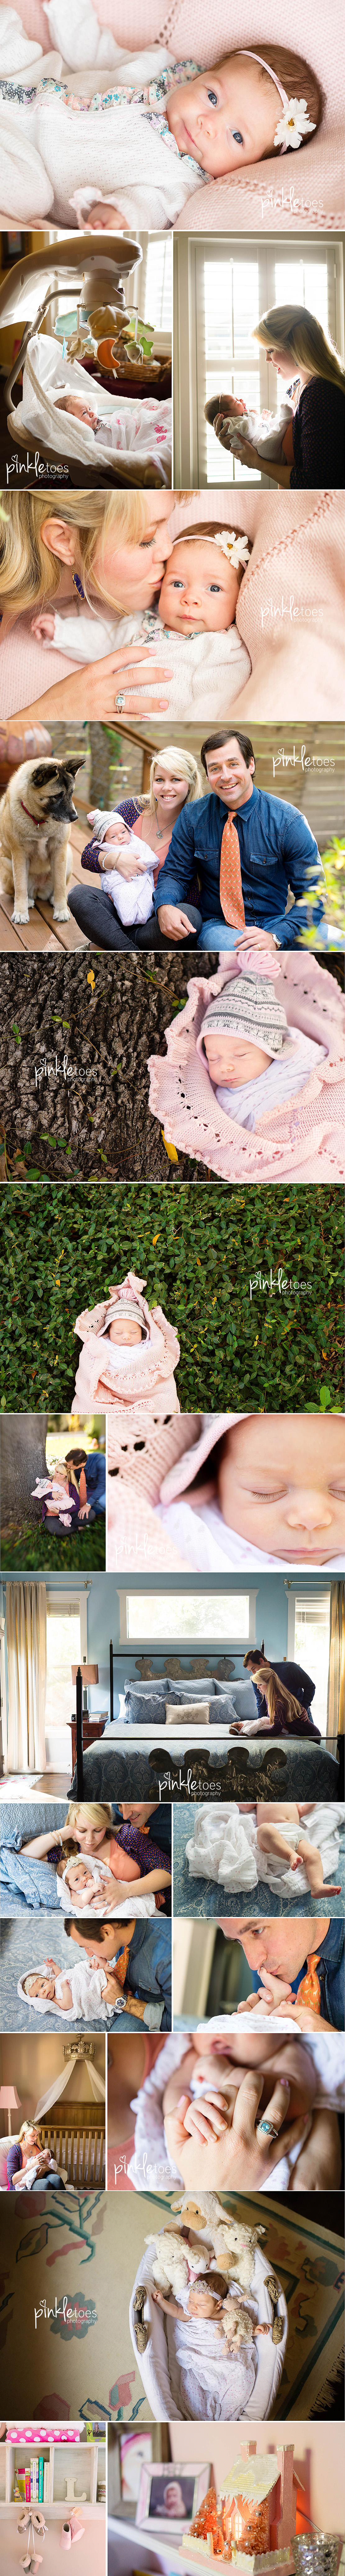 lk-best-award-winning-austin-baby-newborn-lifestyle-photographer